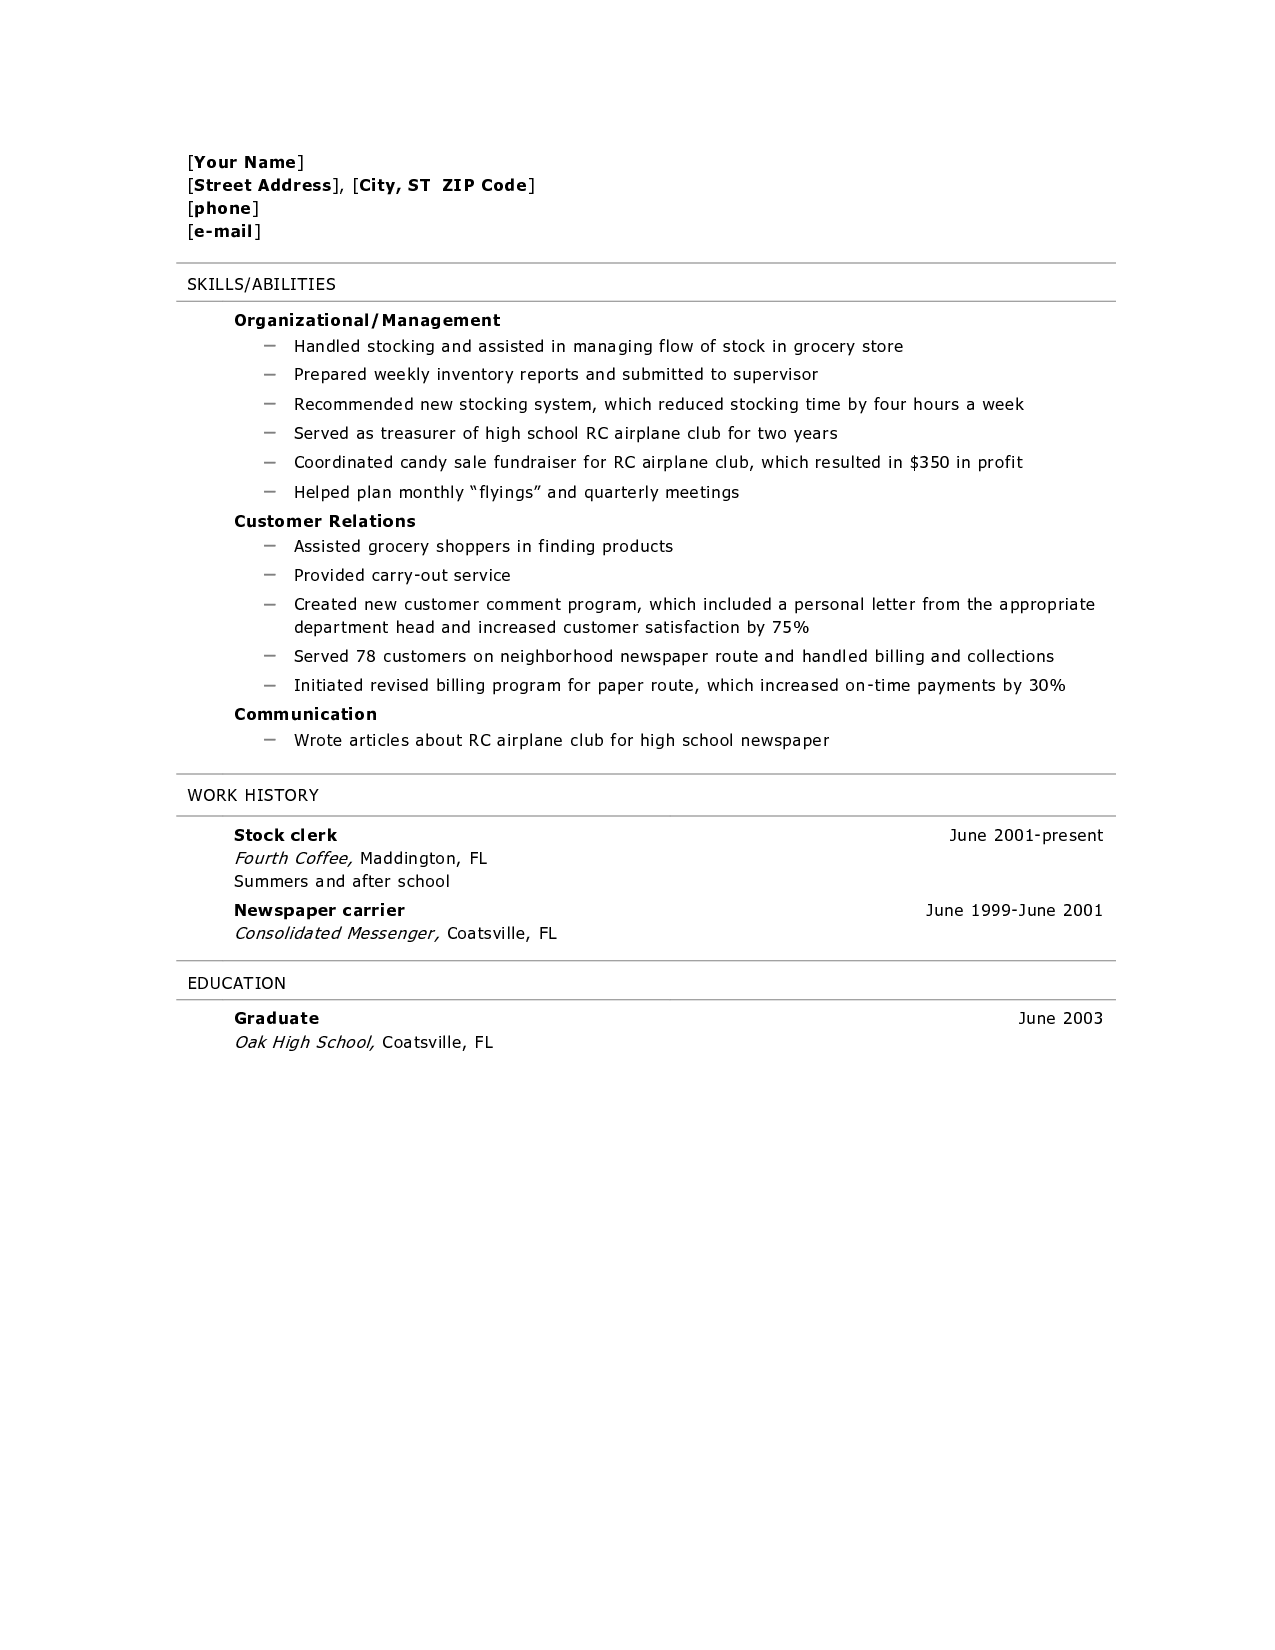 Skills For A High School Student Resume Resume For High School Graduate Resume Builder Resume